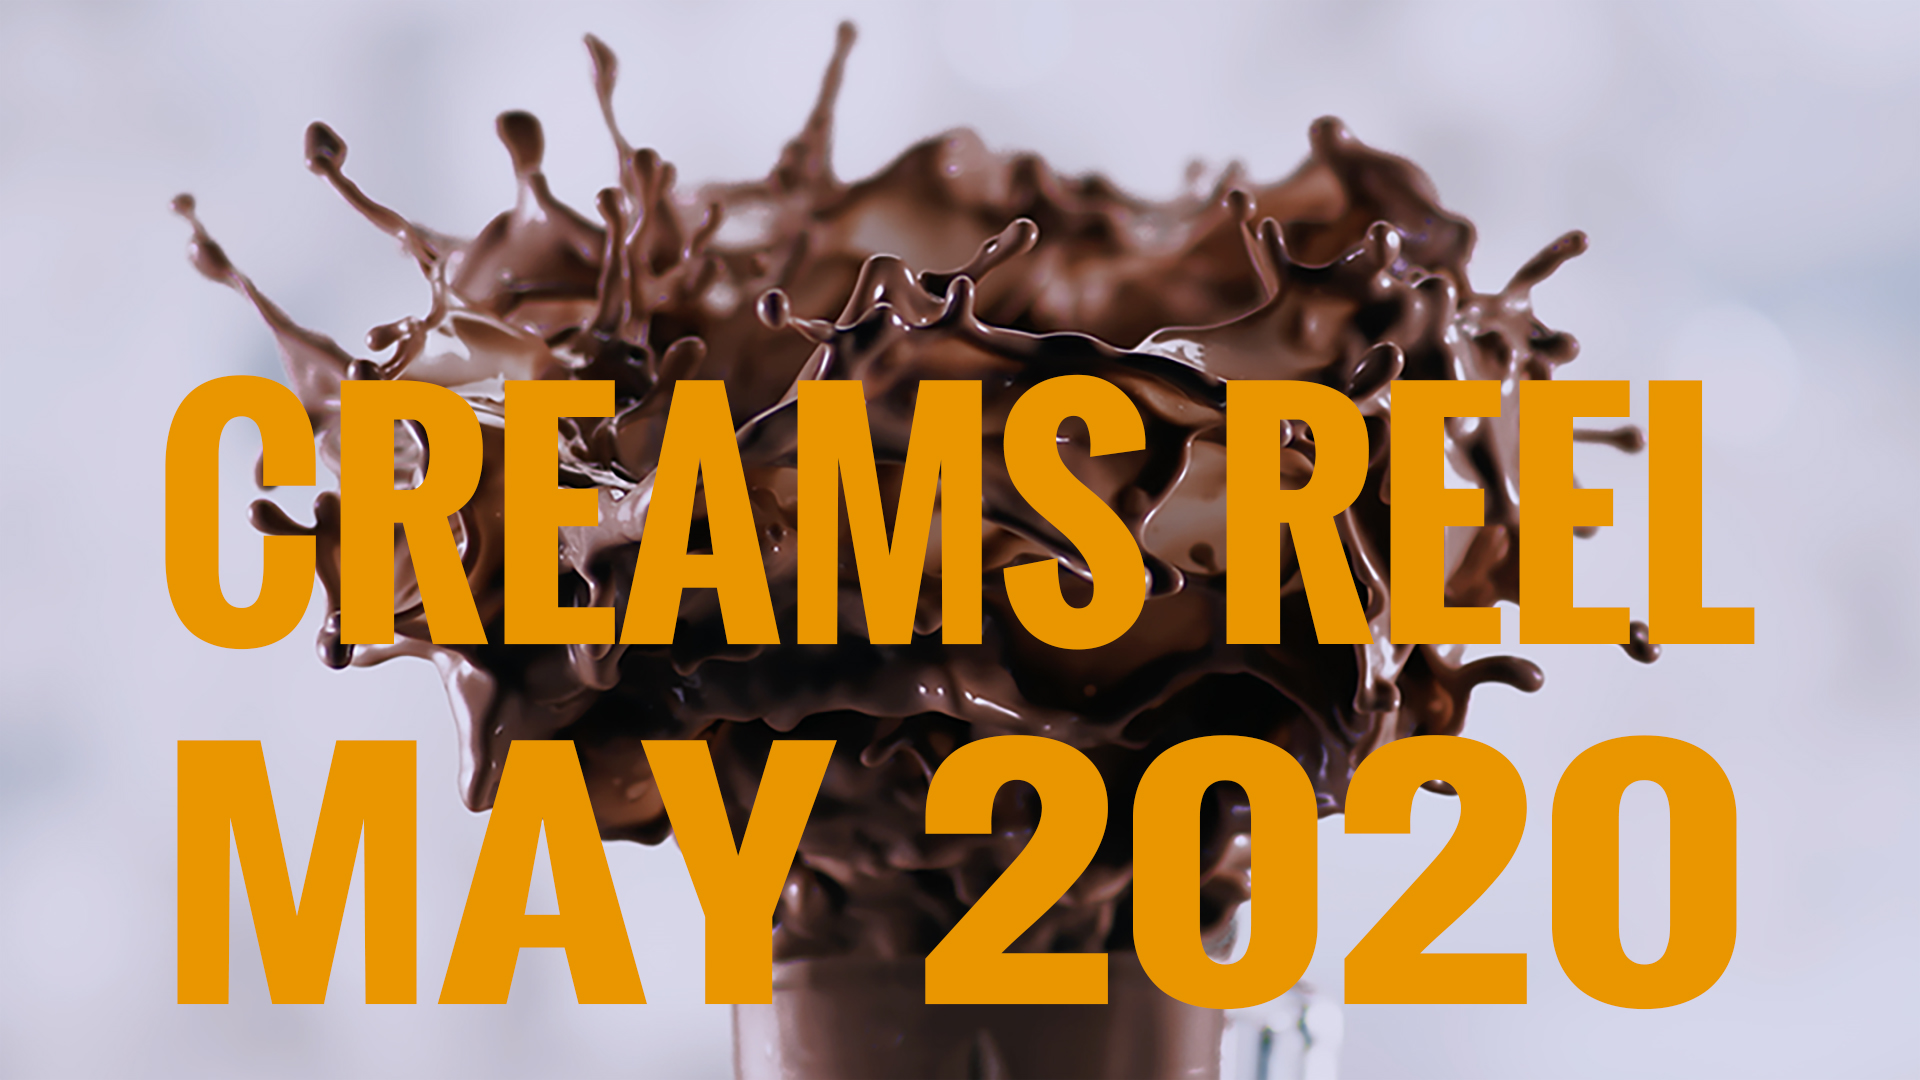 Creams Reel May 2020 Nes Buzzalino